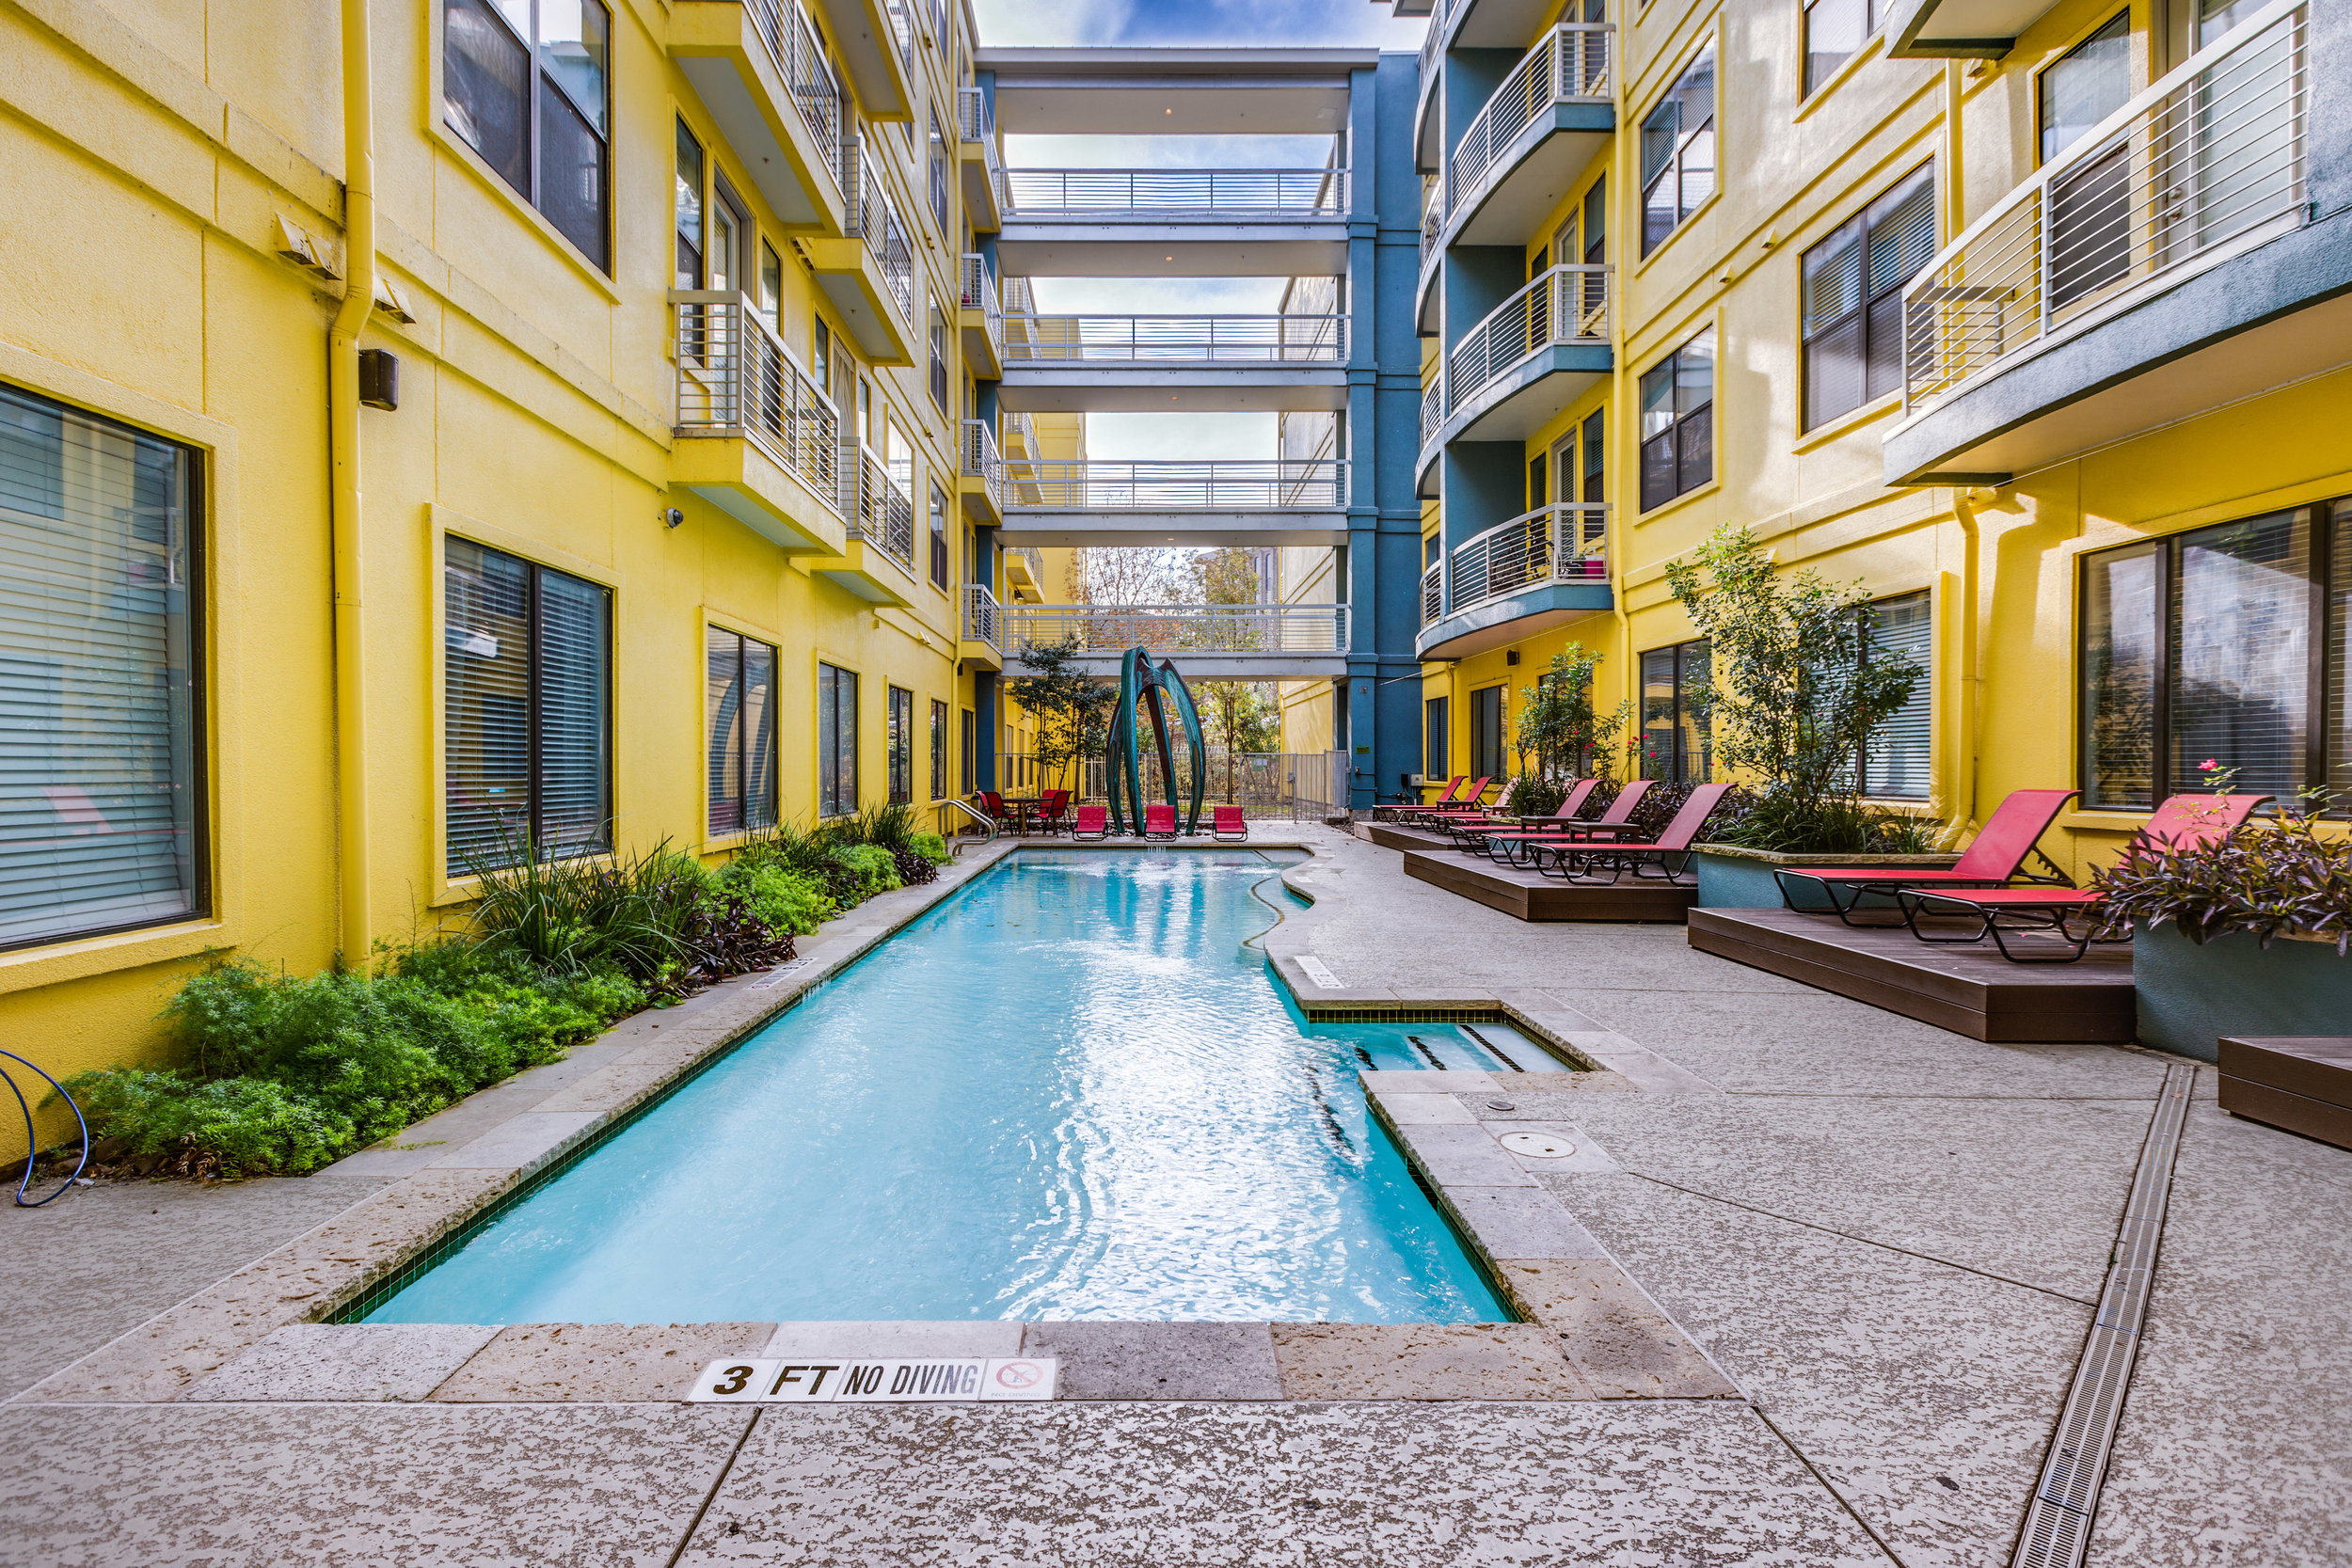 Crescent - Austin, Texas (Interior Courtyard & Pool)